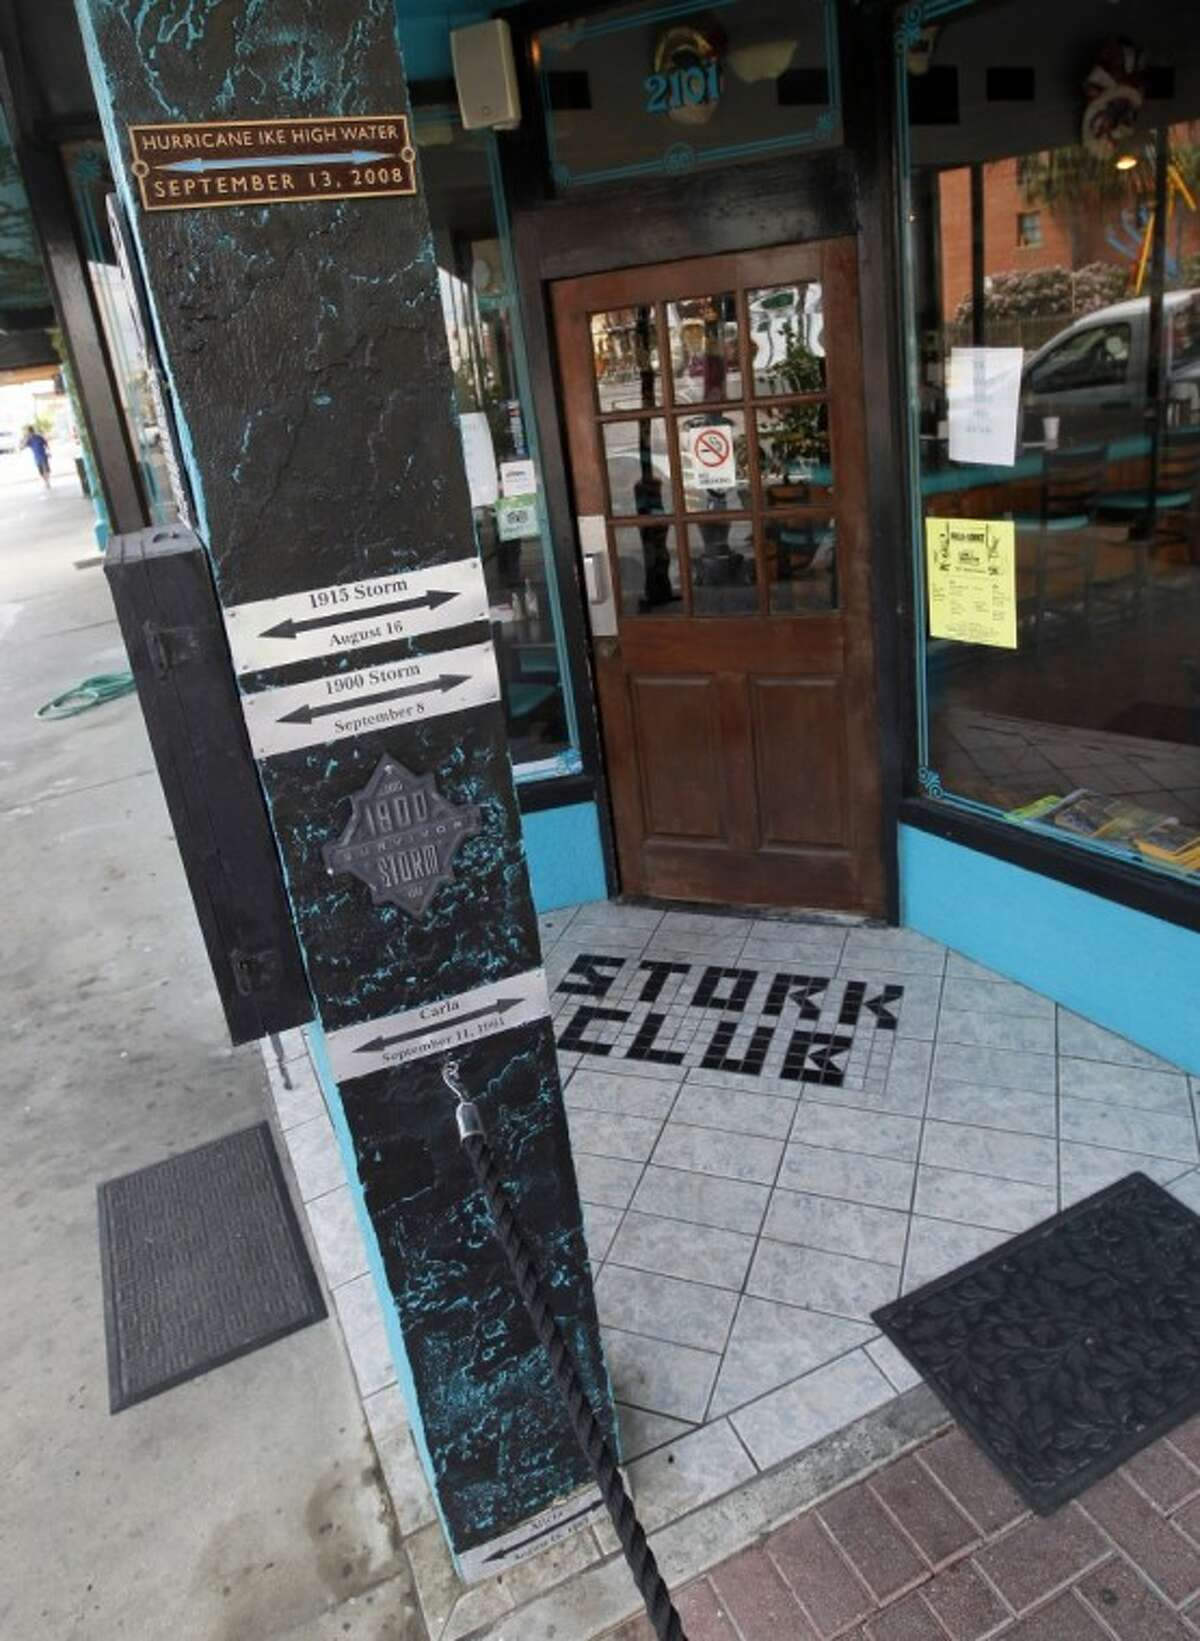 A high water marker for Hurricane Ike on the post outside the Stork Club, 2101 Post Office St. in Galveston, tops the markers for the island's other big storms, including the 1900 Storm and Hurricanes Carla and Alicia.